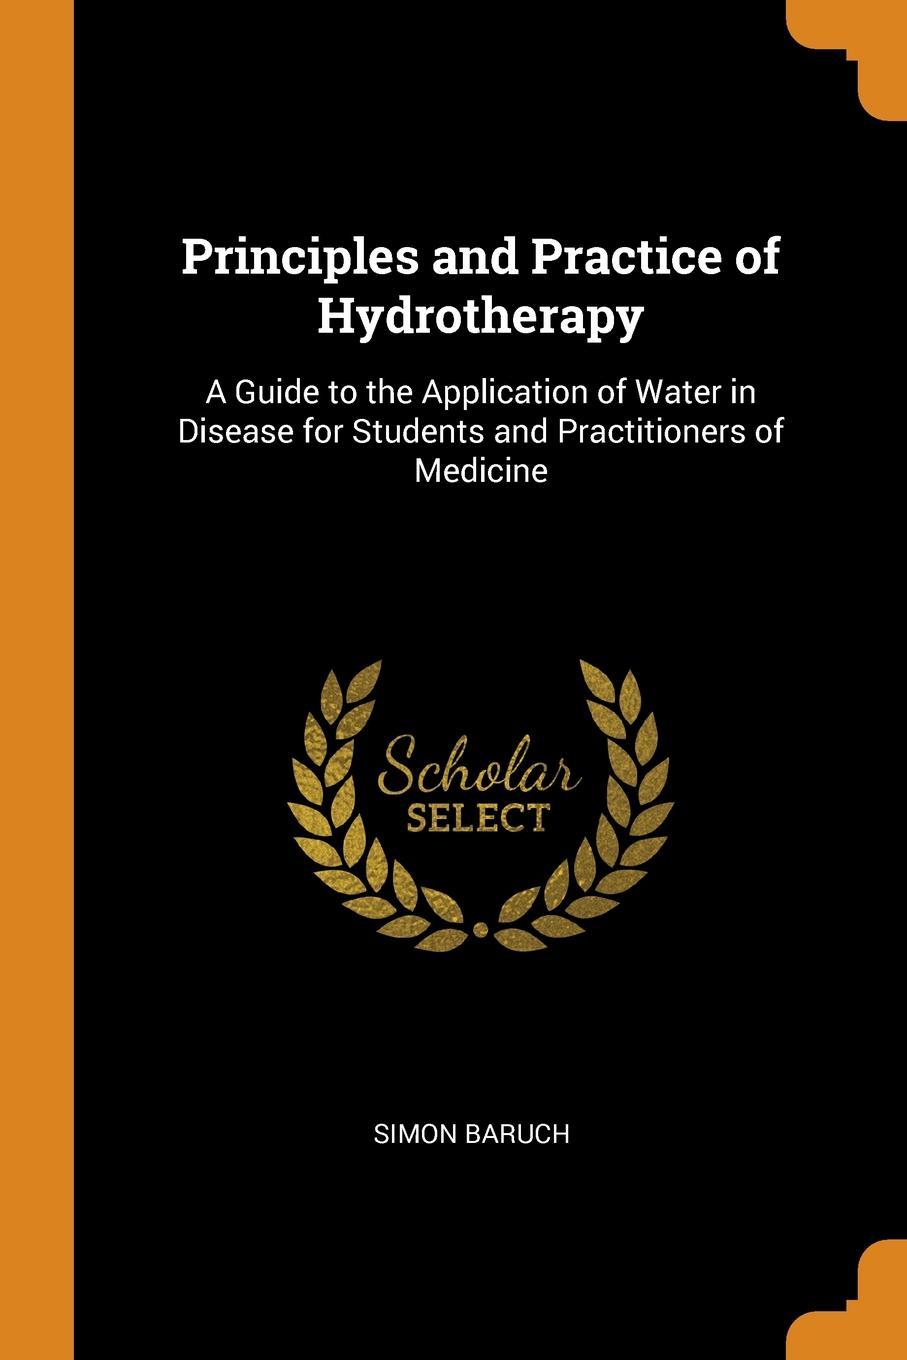 Simon Baruch Principles and Practice of Hydrotherapy. A Guide to the Application of Water in Disease for Students and Practitioners of Medicine simon baruch the principles and practice of hydrotherapy